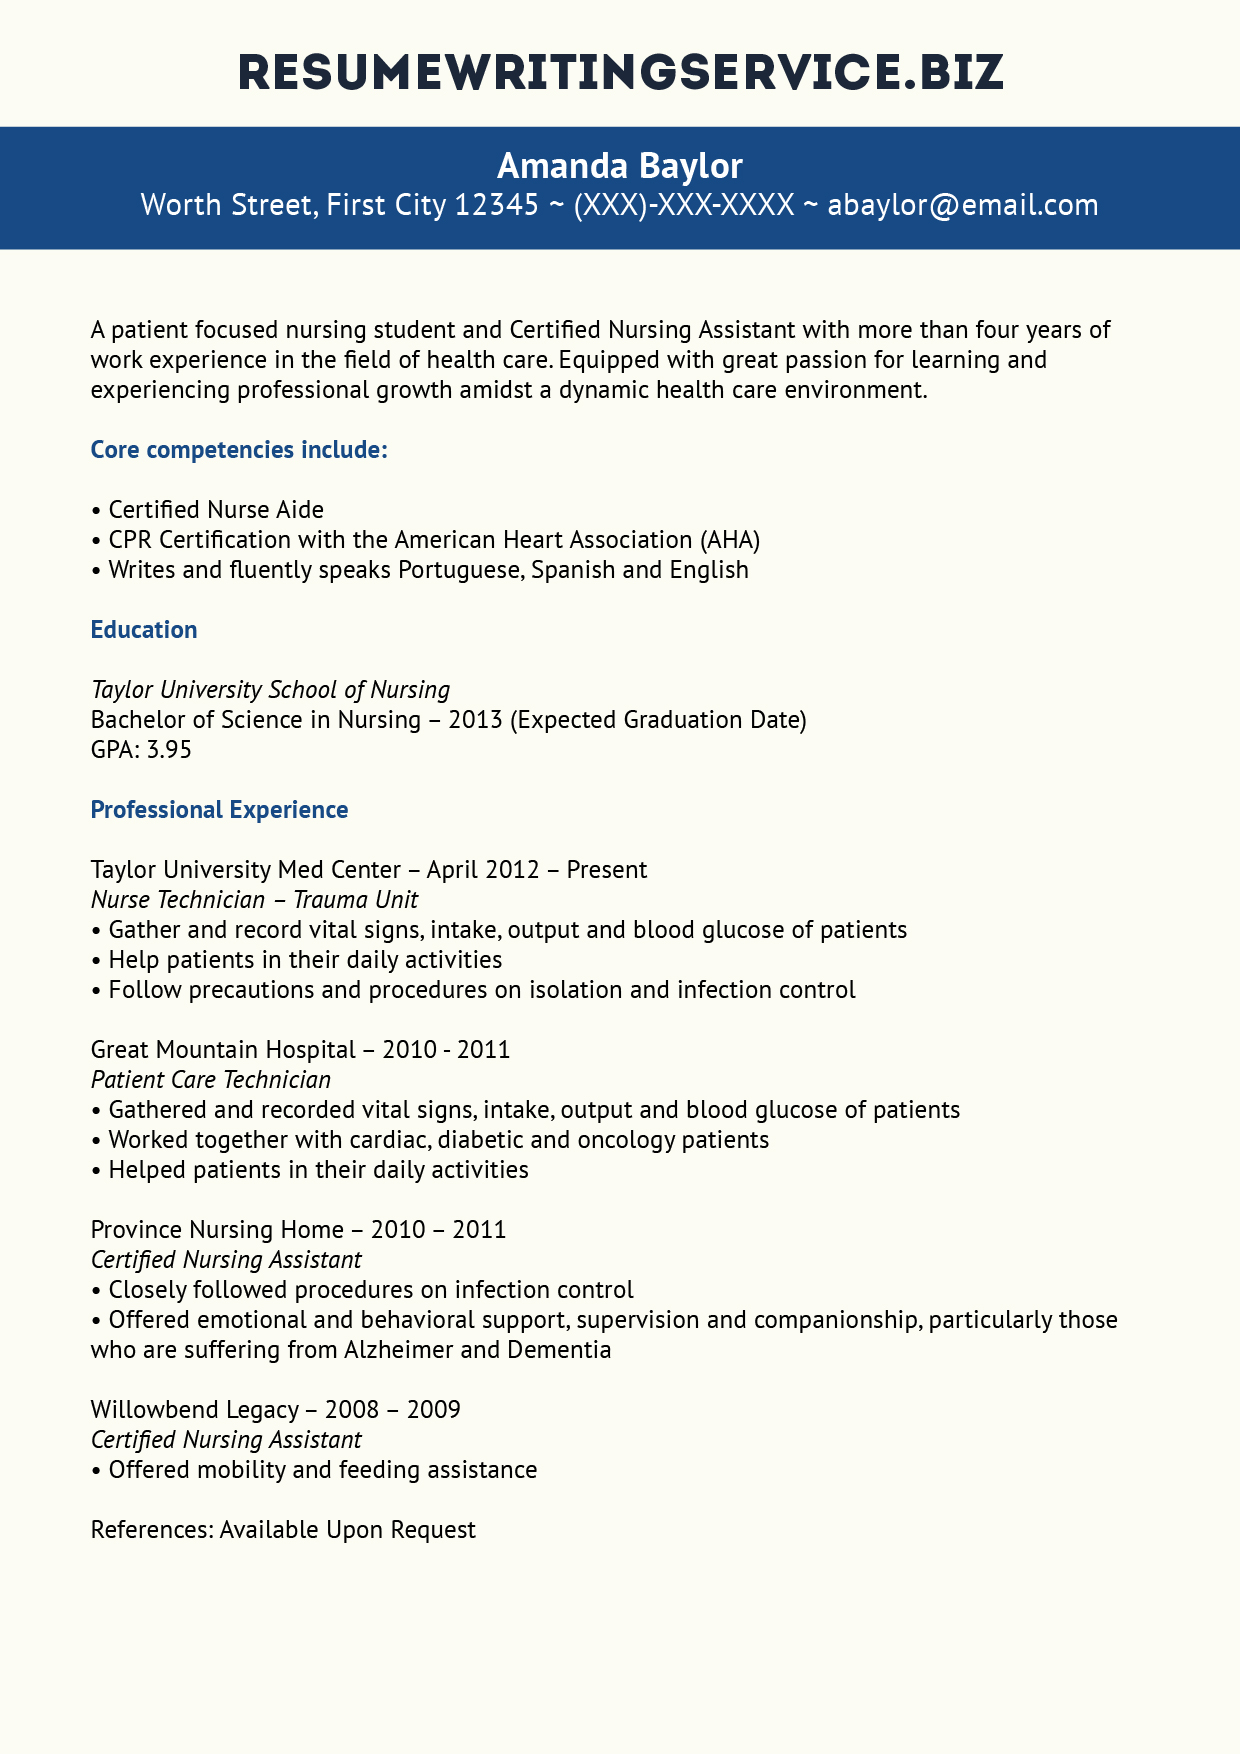 YMCA of Montclair - Program Director Resume Example